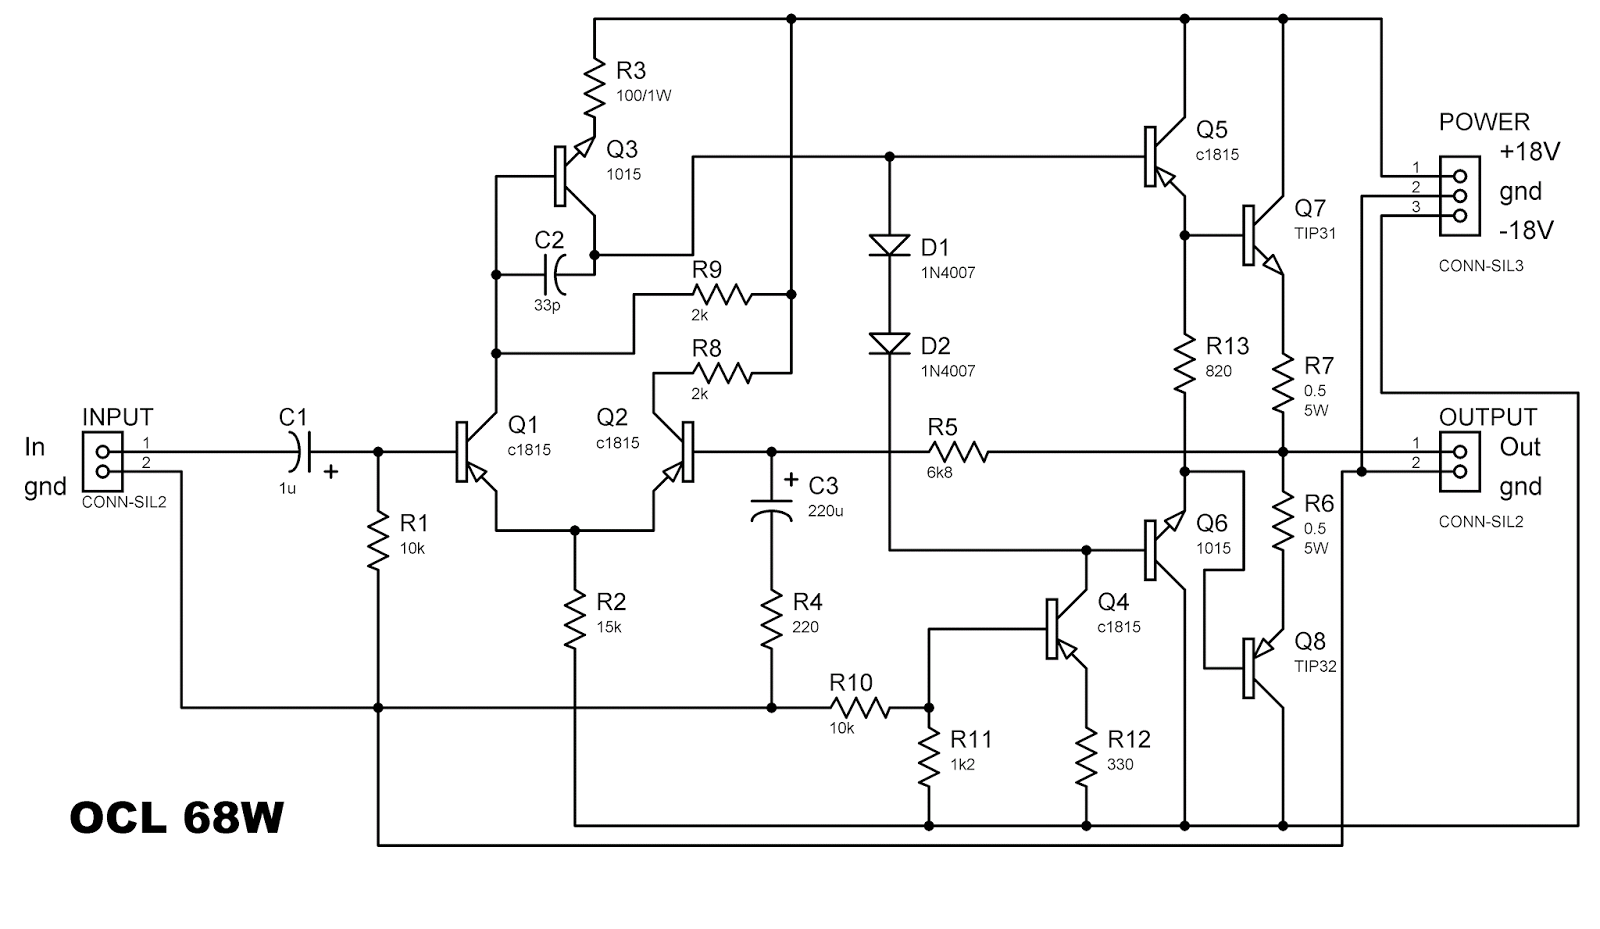 ocl 68 watt power amplifier electronic circuit inverter circuit othercircuit amplifiercircuit circuit diagram [ 1600 x 929 Pixel ]